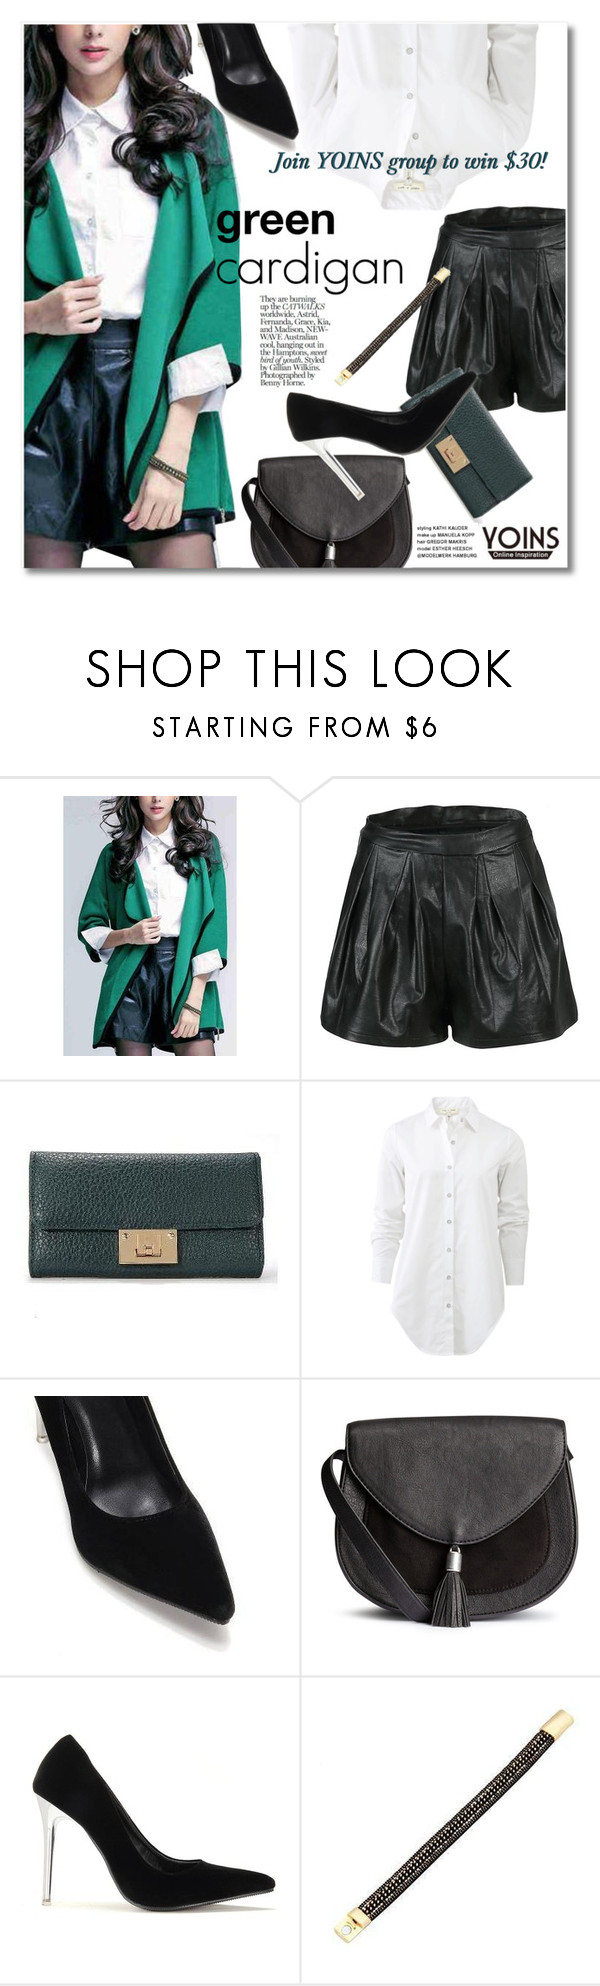 """Yours inspiration YOINS"" by svijetlana ❤ liked on Polyvore featuring rag & bone and yoins"